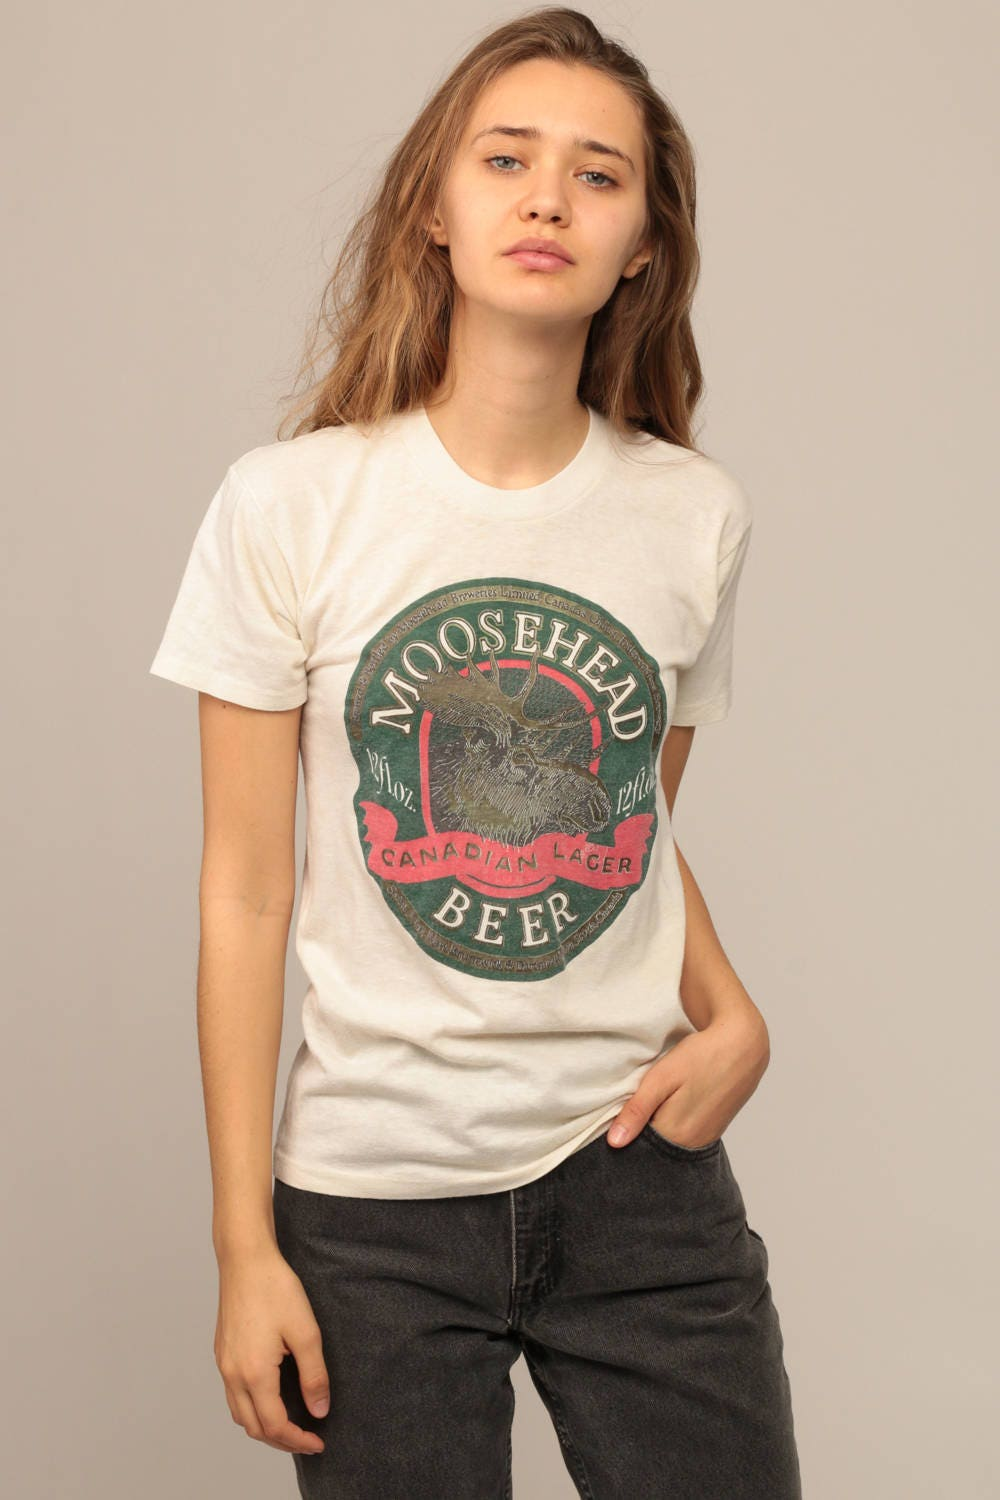 Beer shirt moosehead beer tee new orleans shirt paper thin t for T shirt printing new orleans